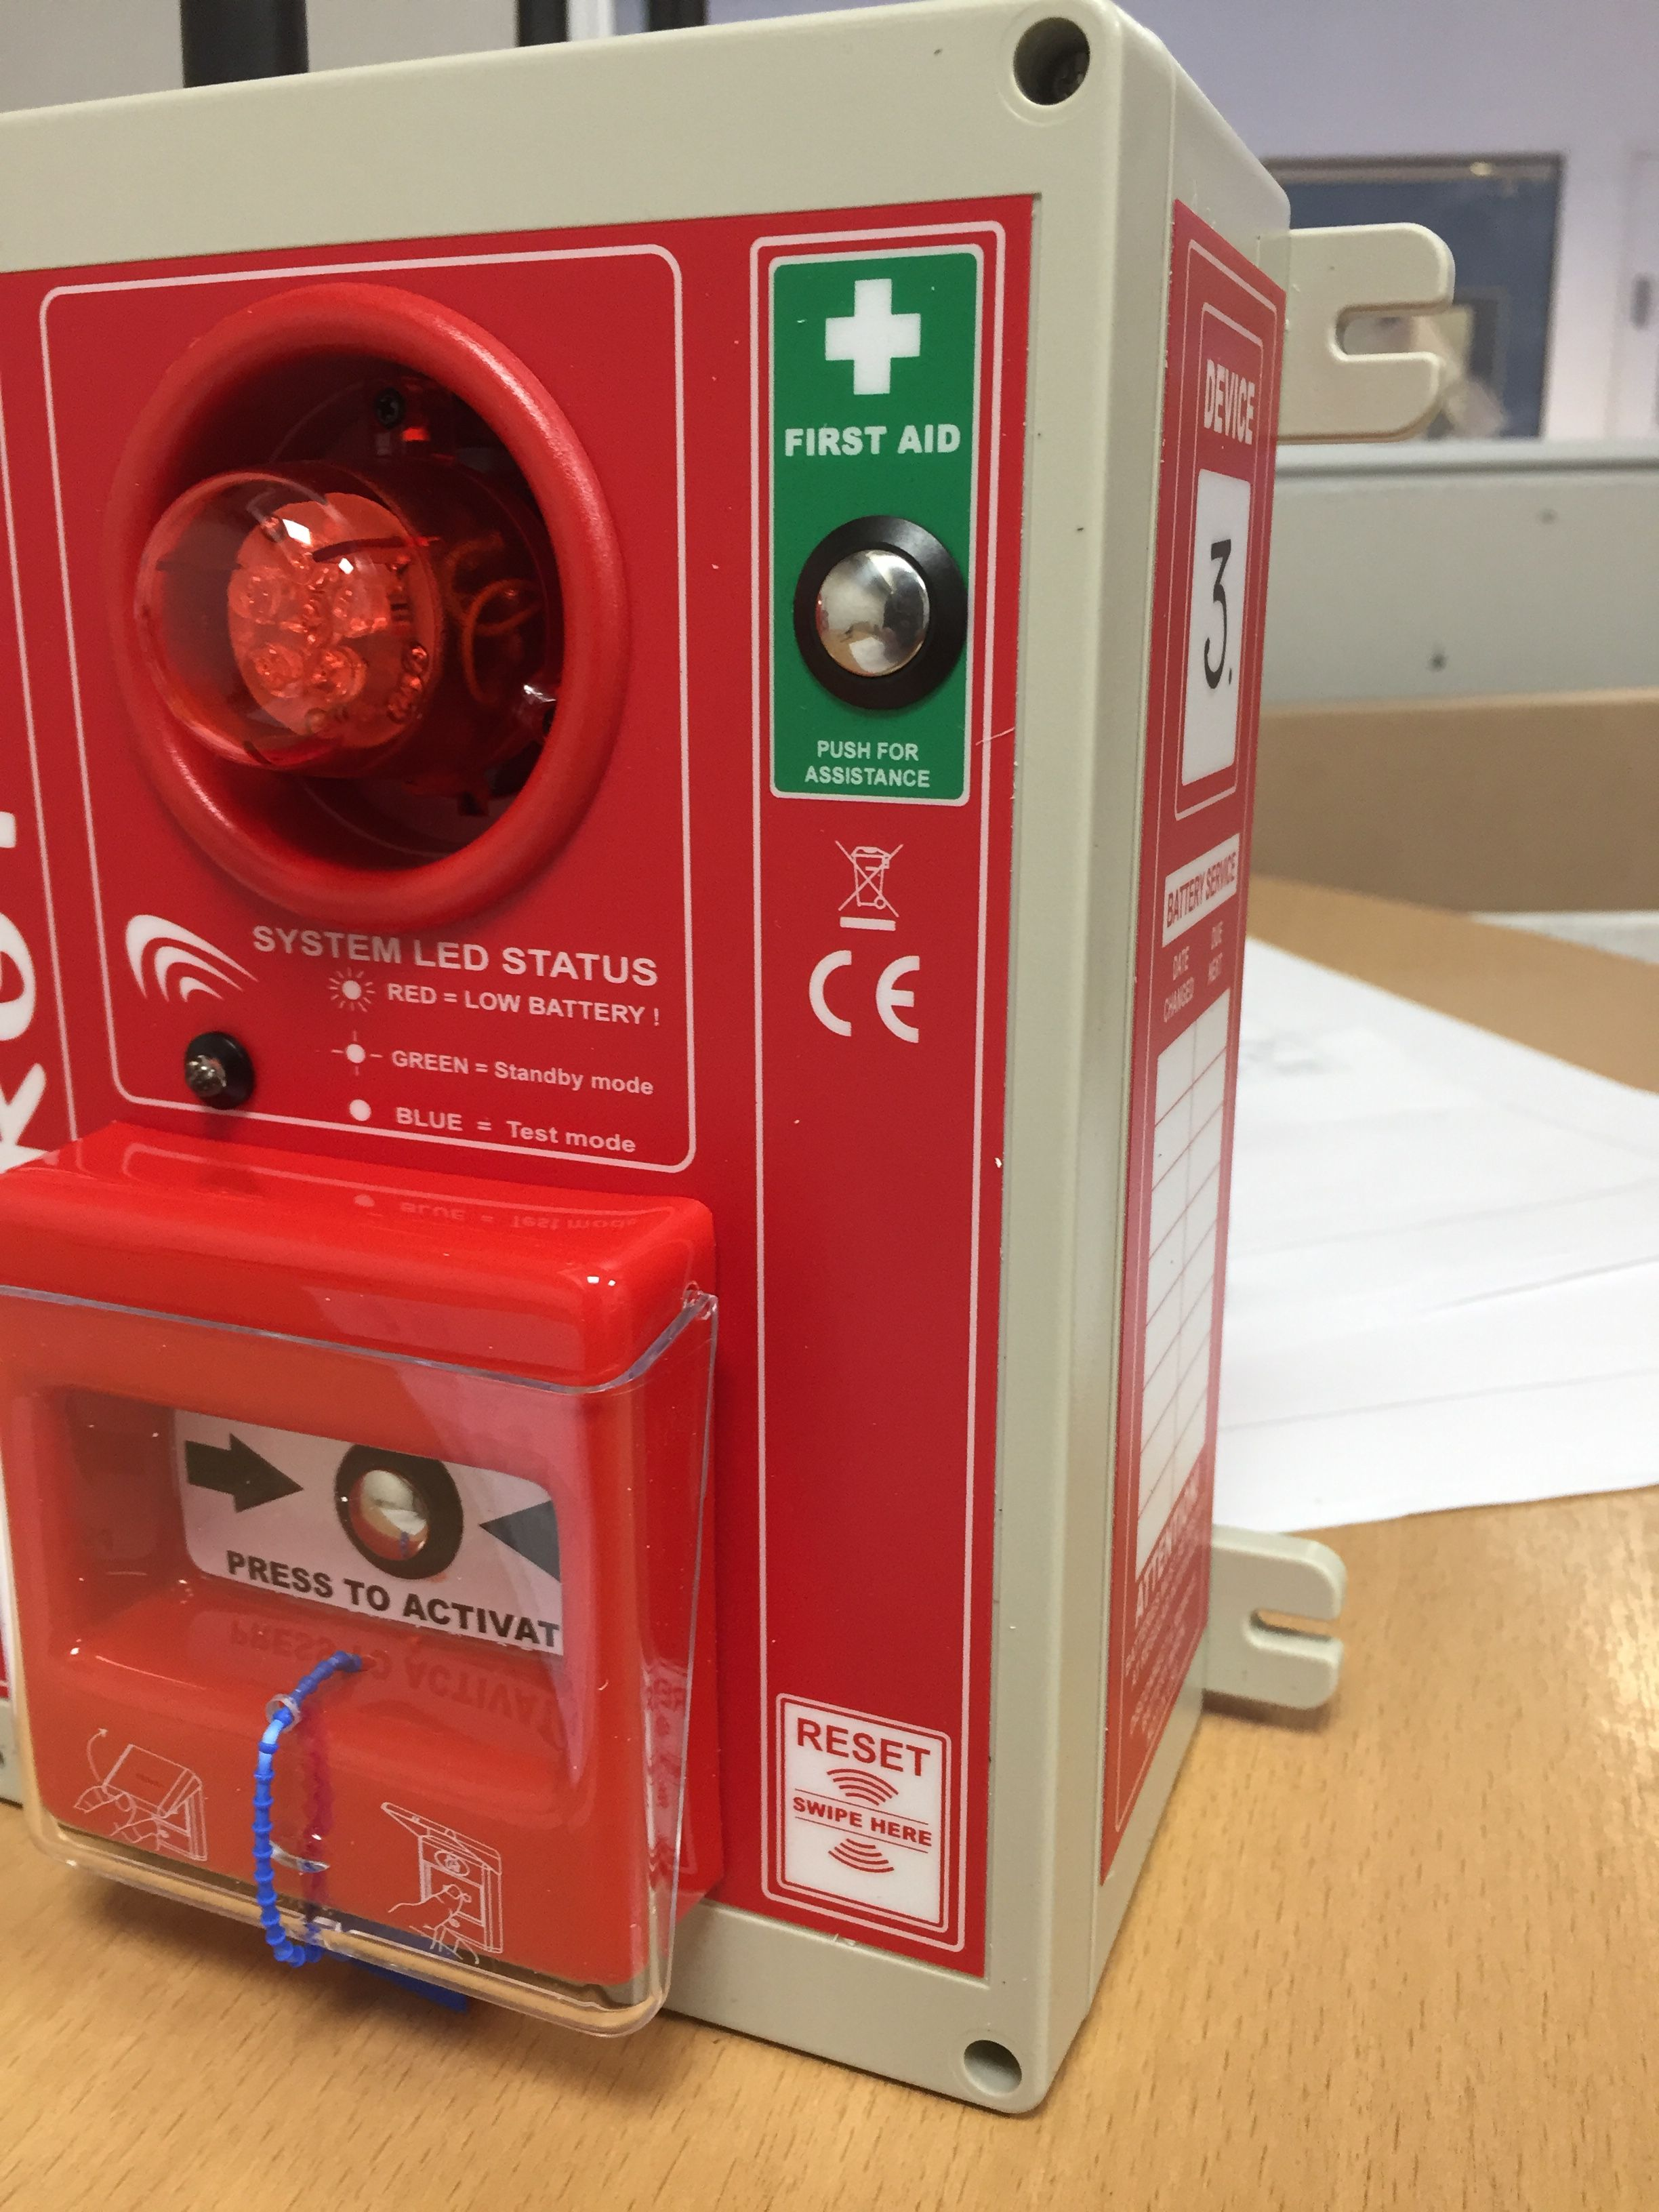 Wireless Fire Alarm call point with added First Aid